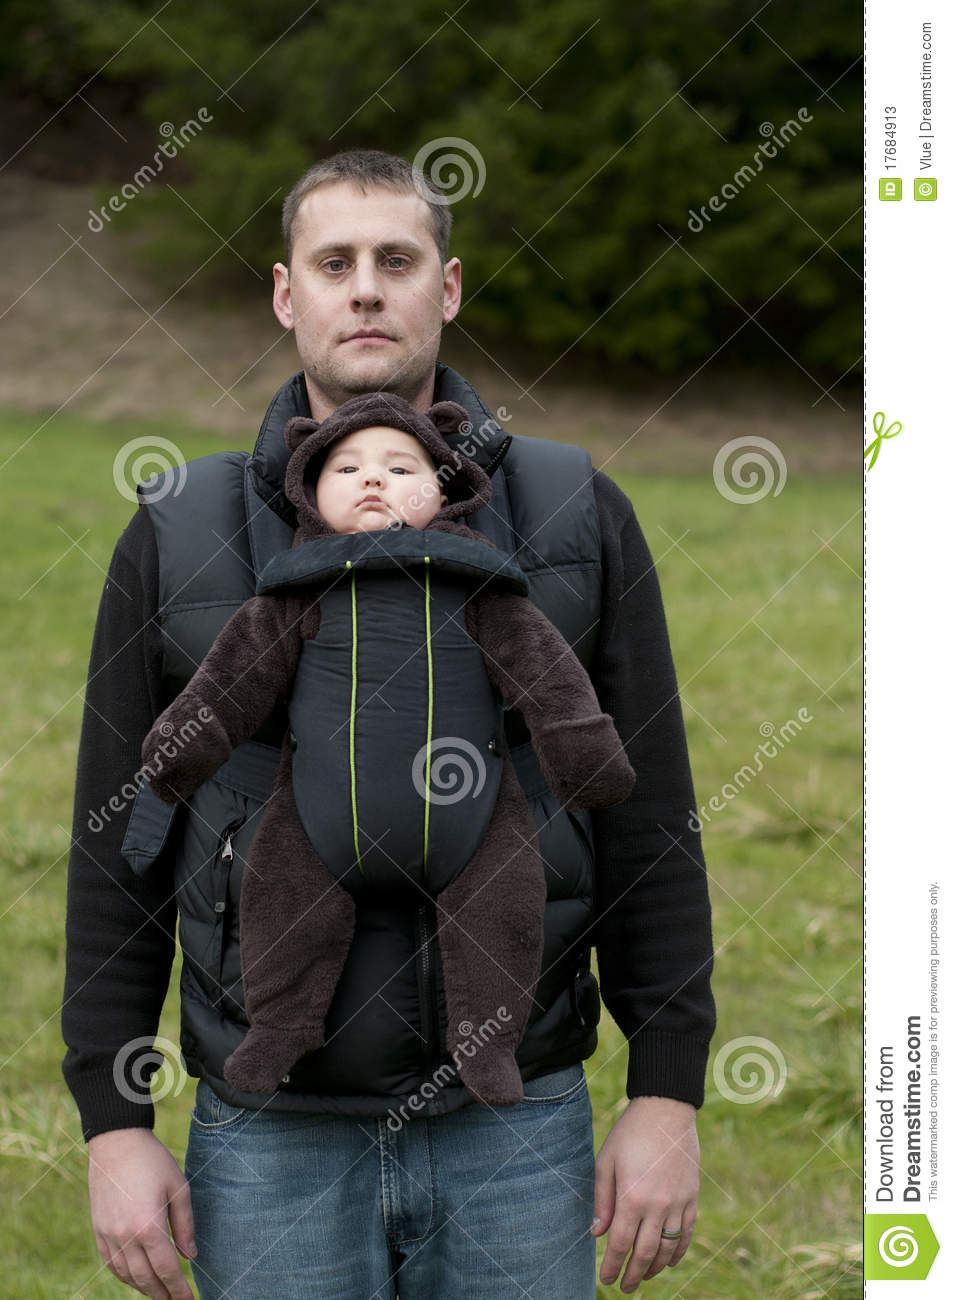 Newborn Toddler Child Father With Front Baby Carrier Stock Photos Image 17684913